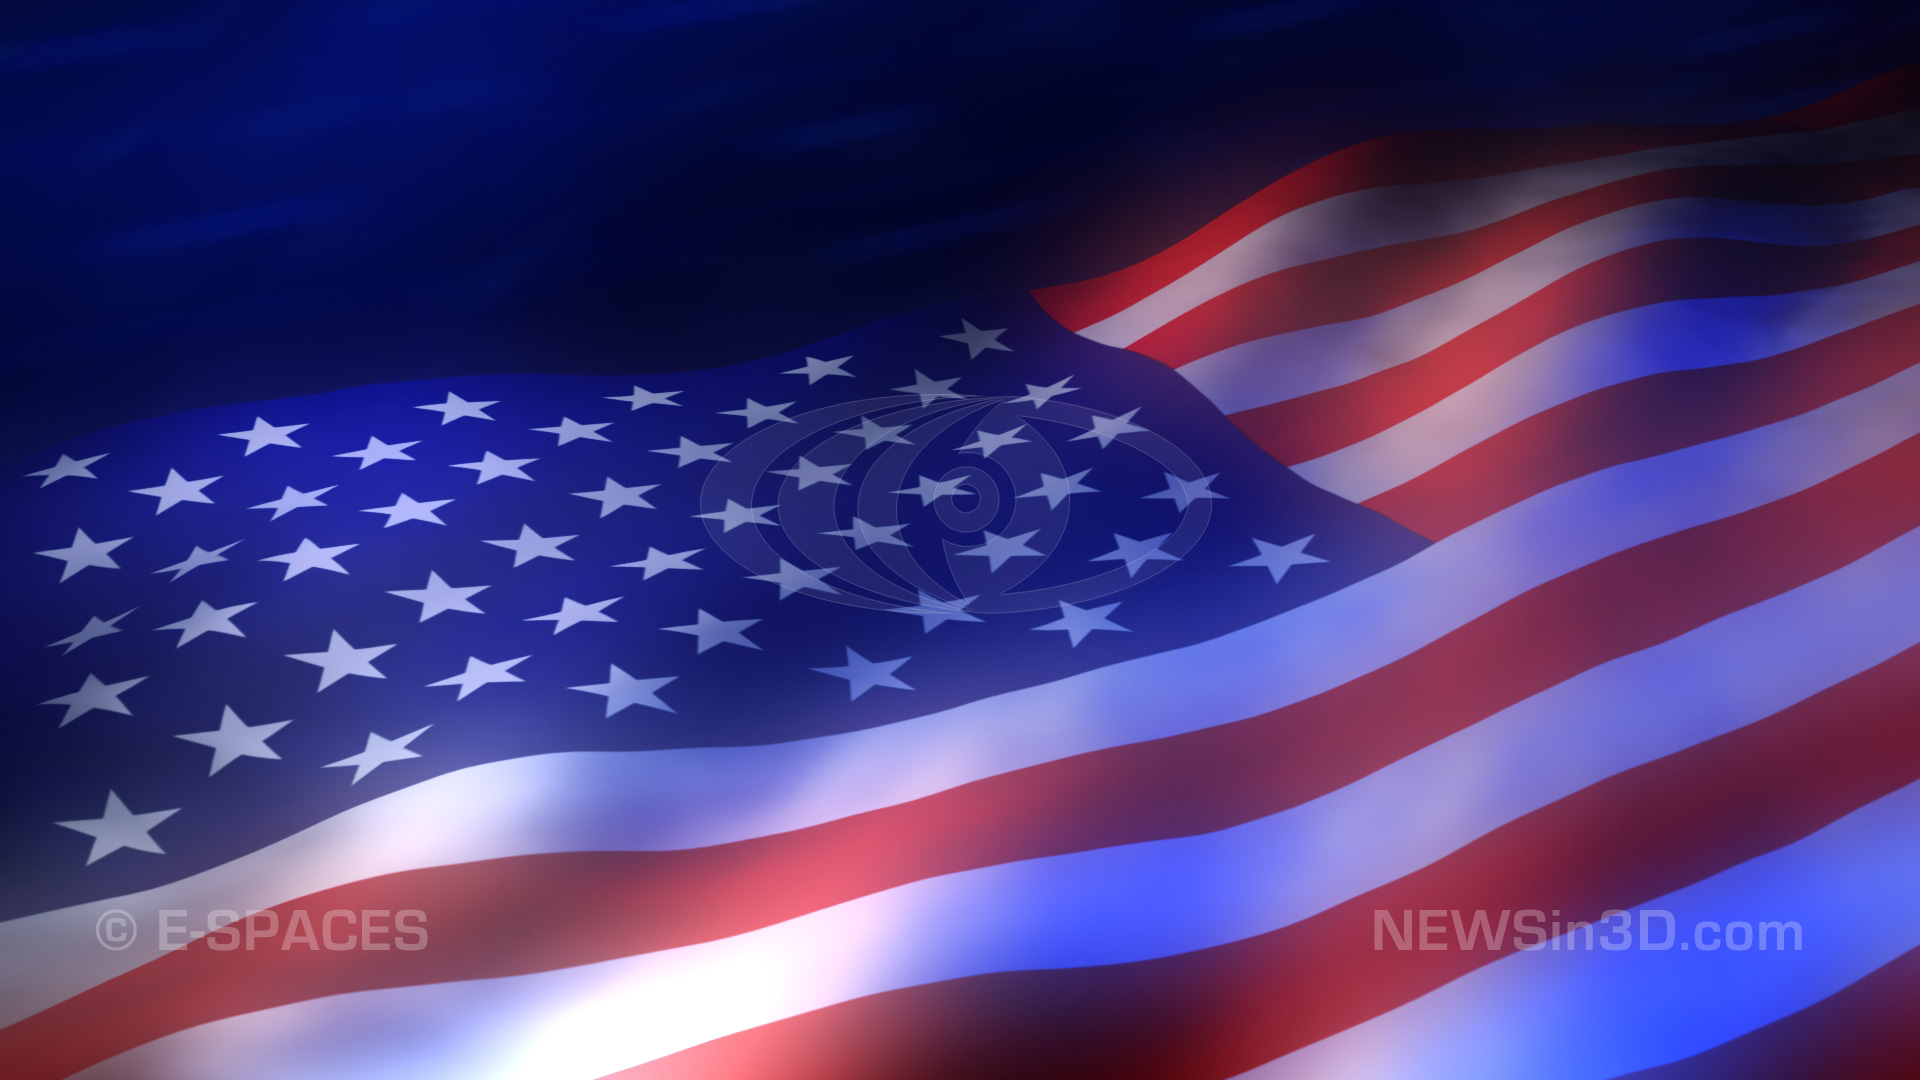 Flag Backgrounds Background Presidential American Election wallpapers 1920x1080